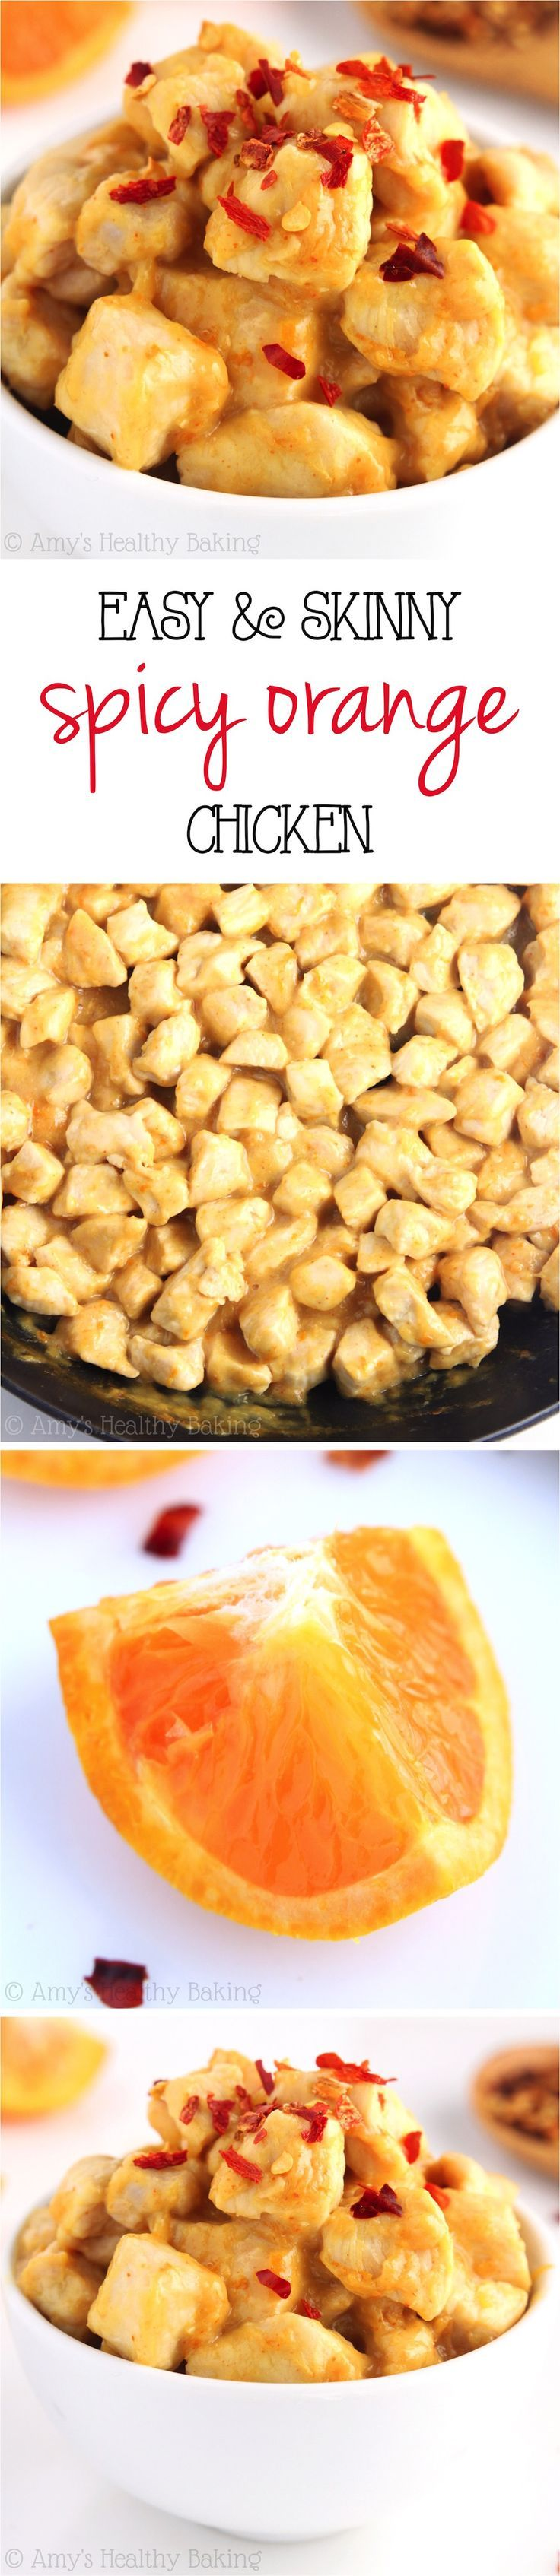 Skinny Spicy Orange Chicken -- only 7 ingredients & 20 minutes! SO easy, healthy & it tastes a million times better than take-out!